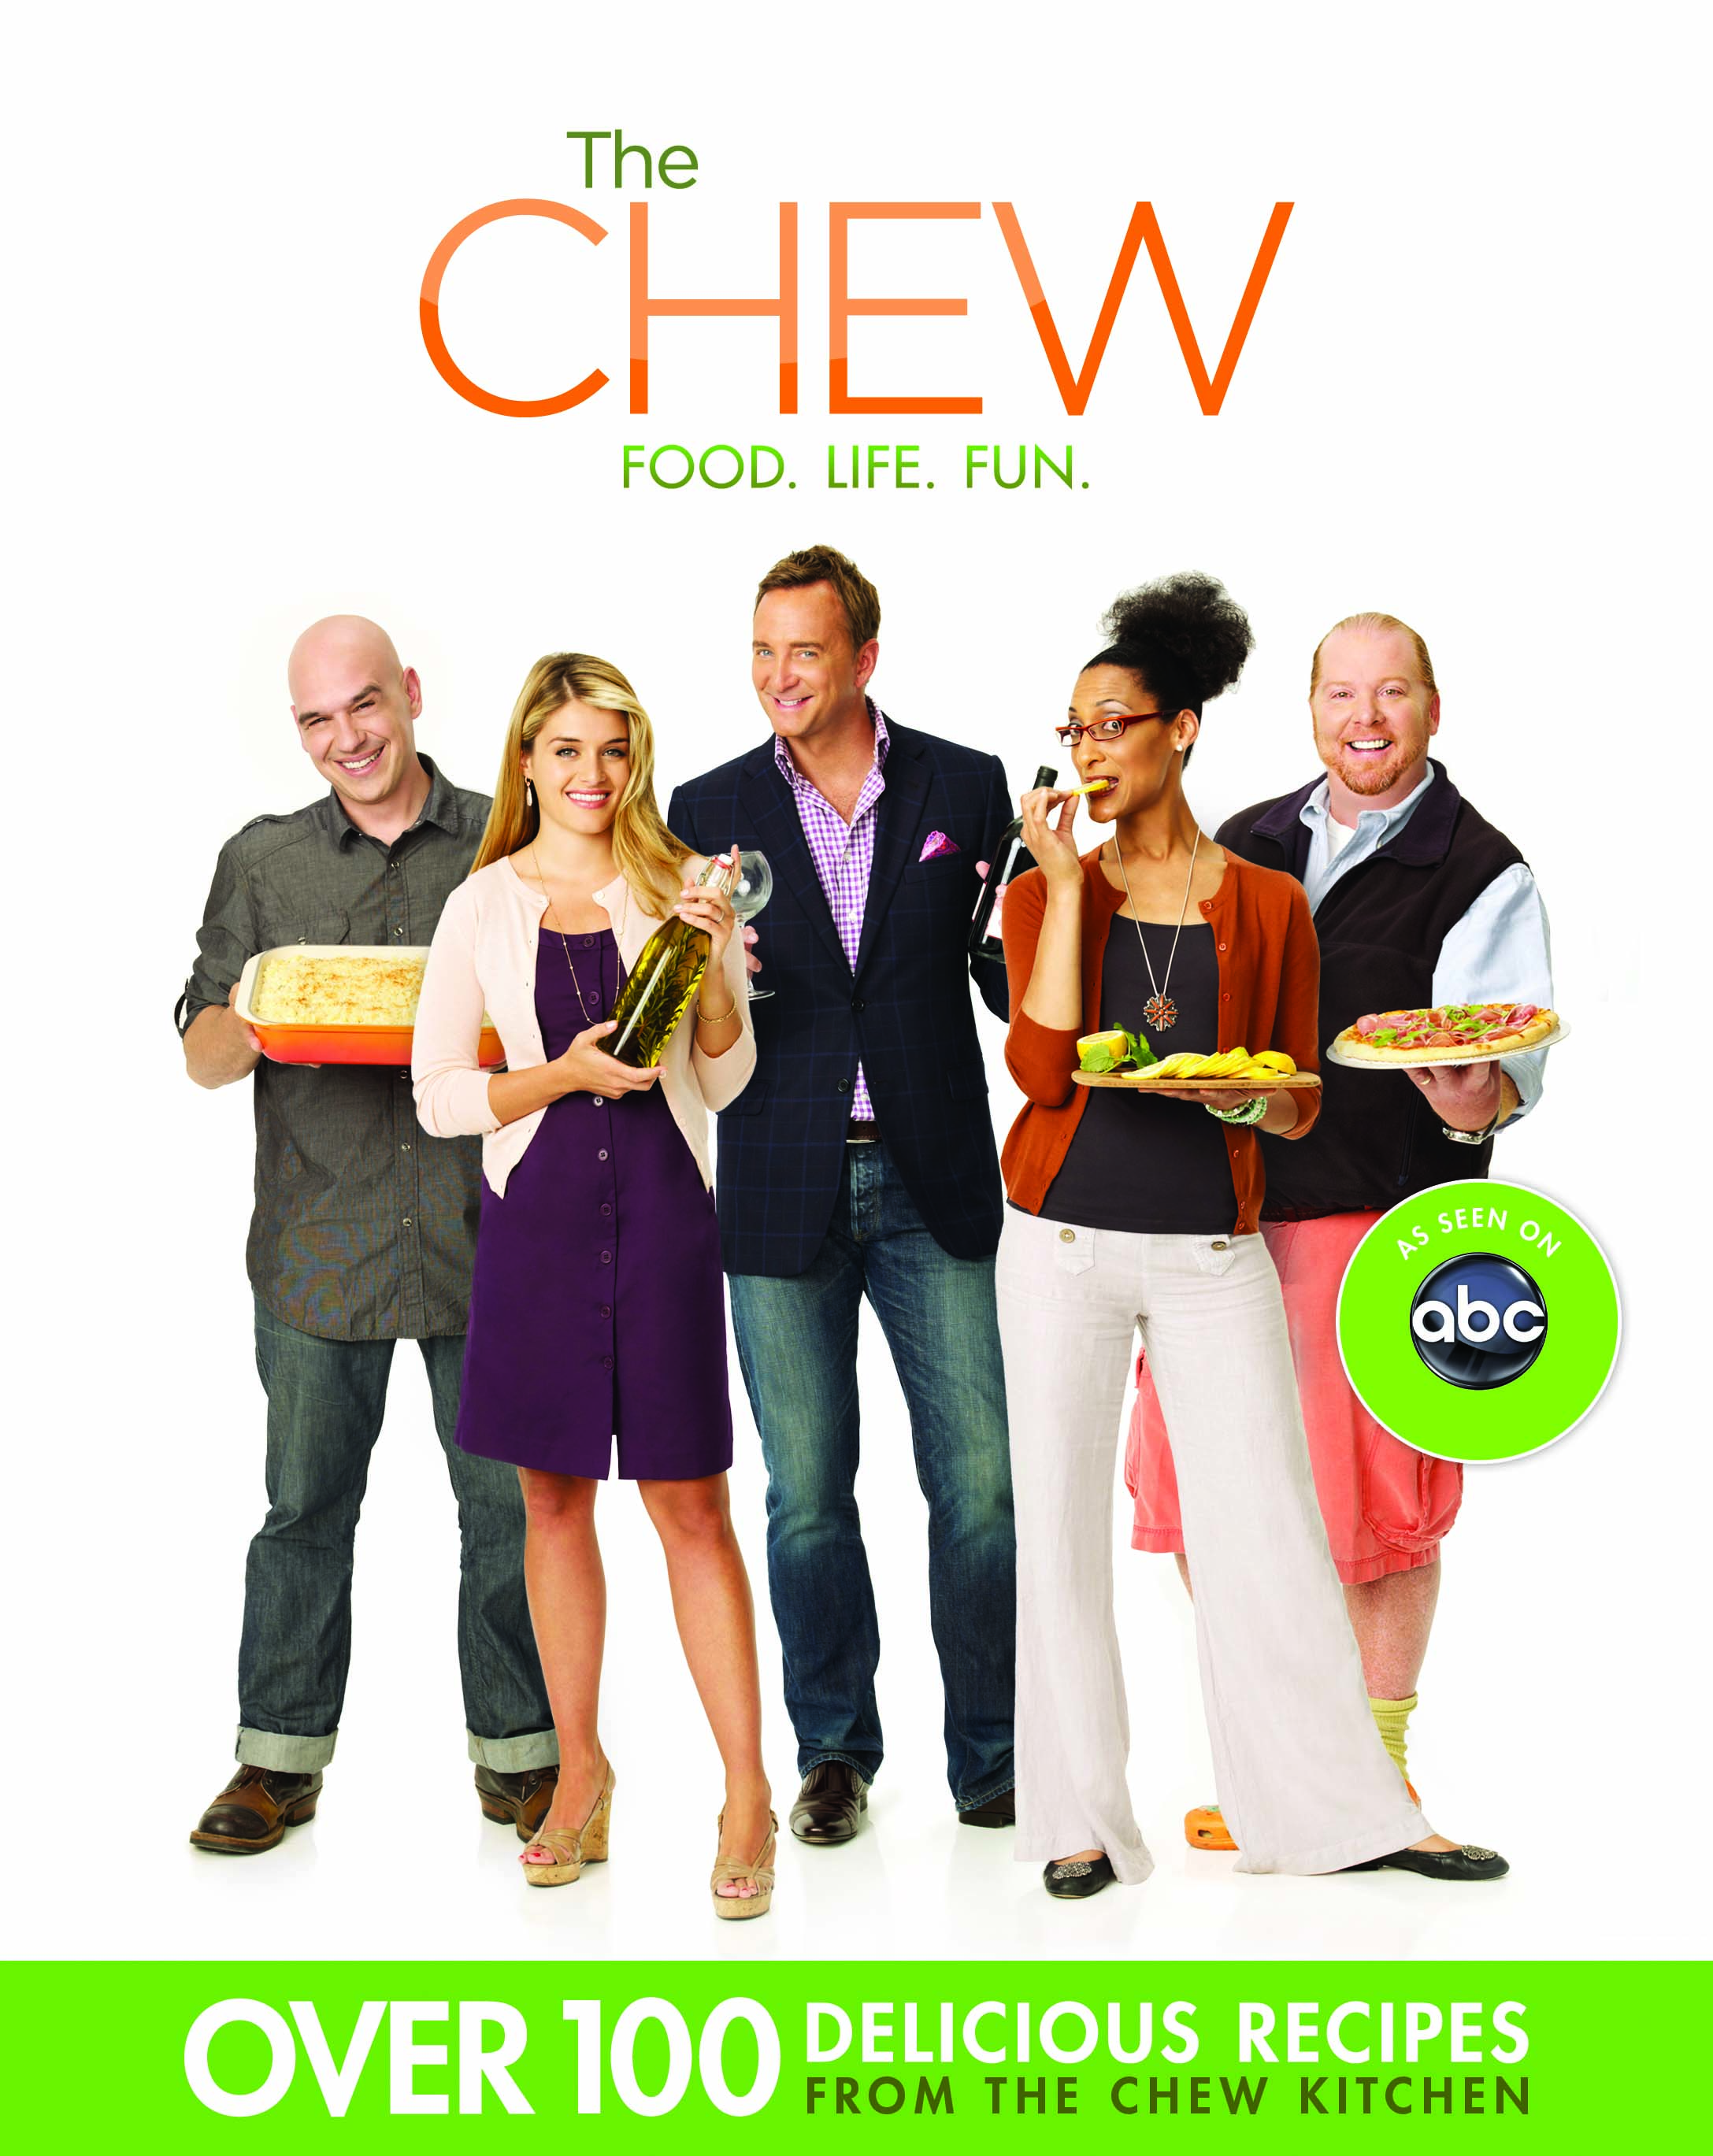 The Chew: Food. Fun. Life. 